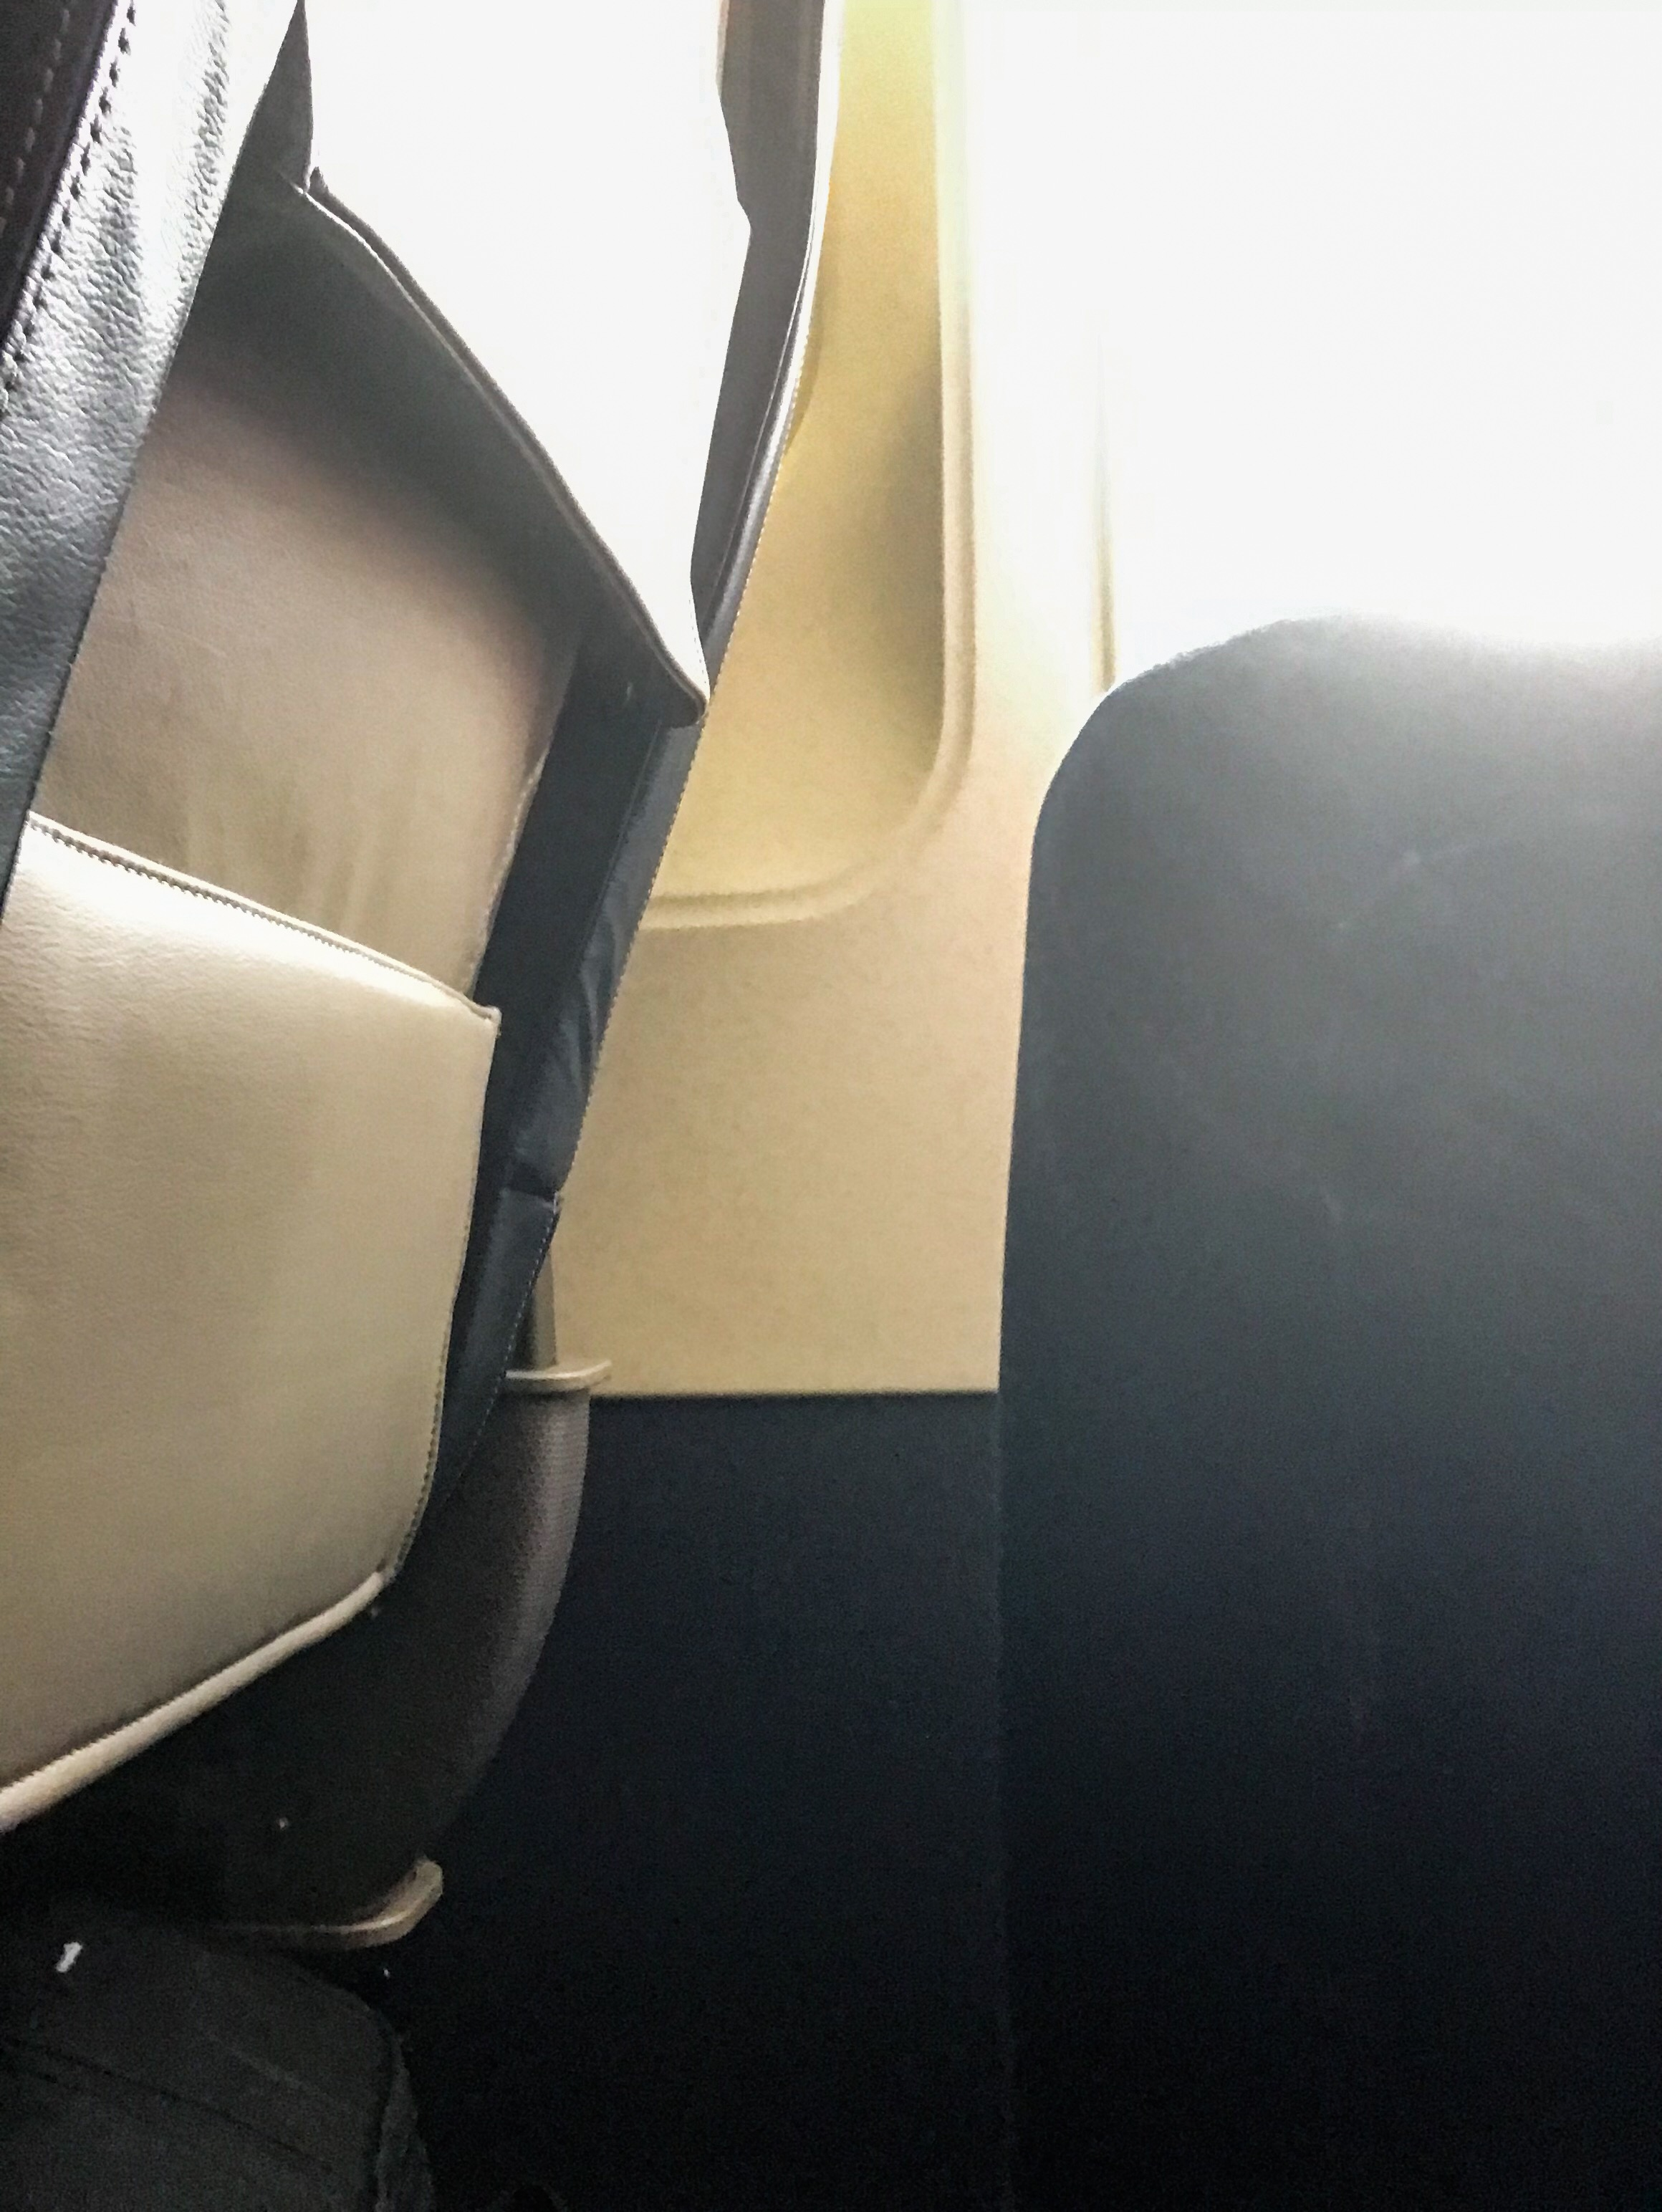 Another angle of the legroom in Seat 2D.